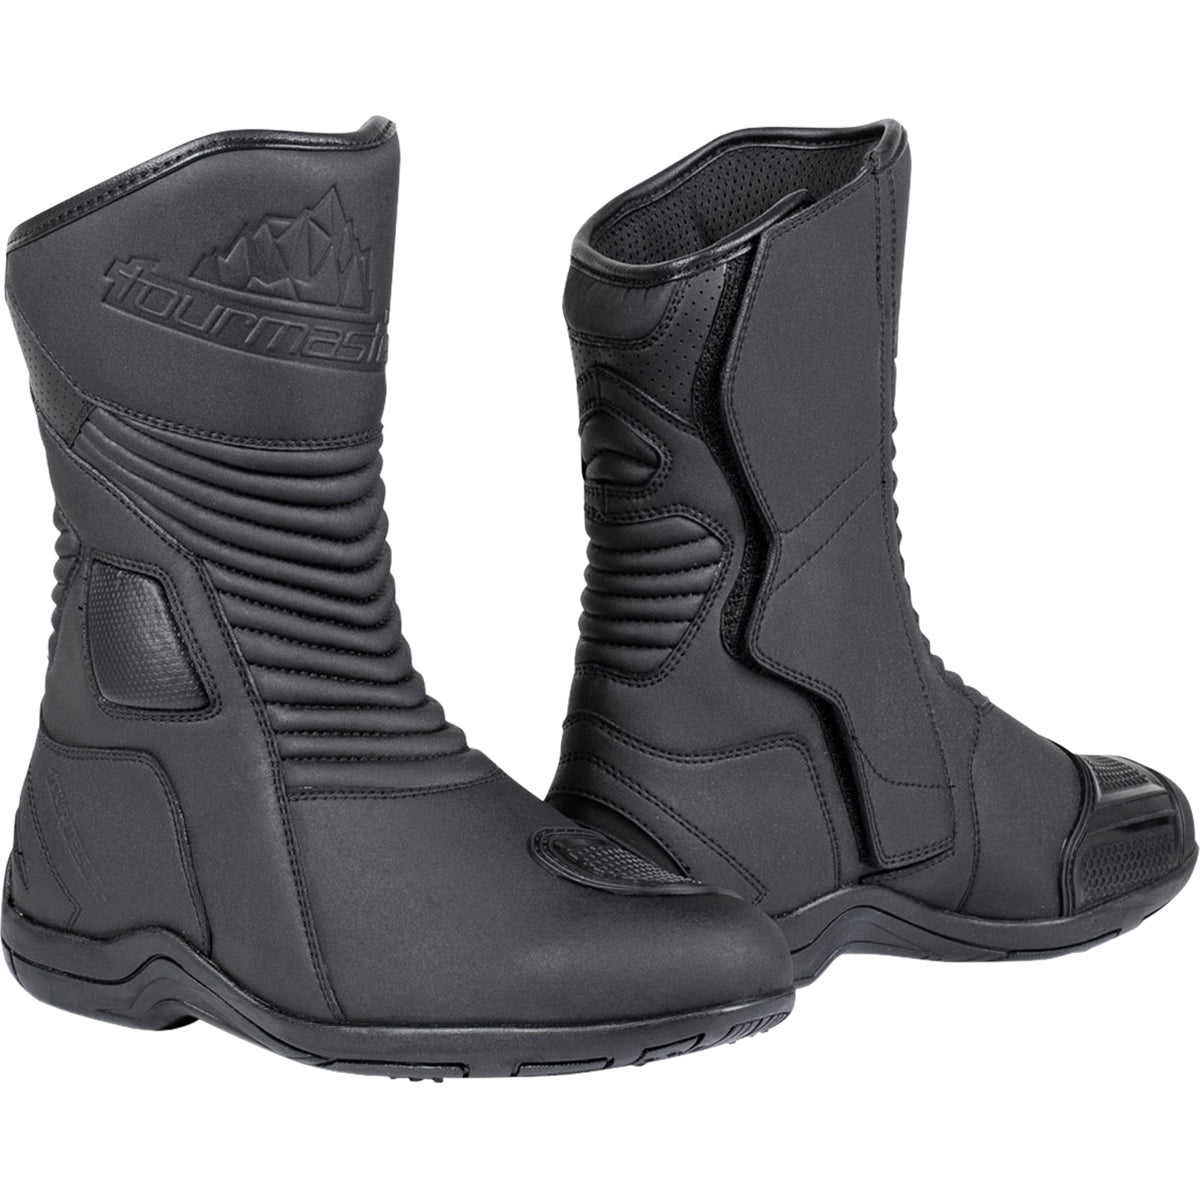 Tour Master Solution WP V3 Men's Street Boots-8601